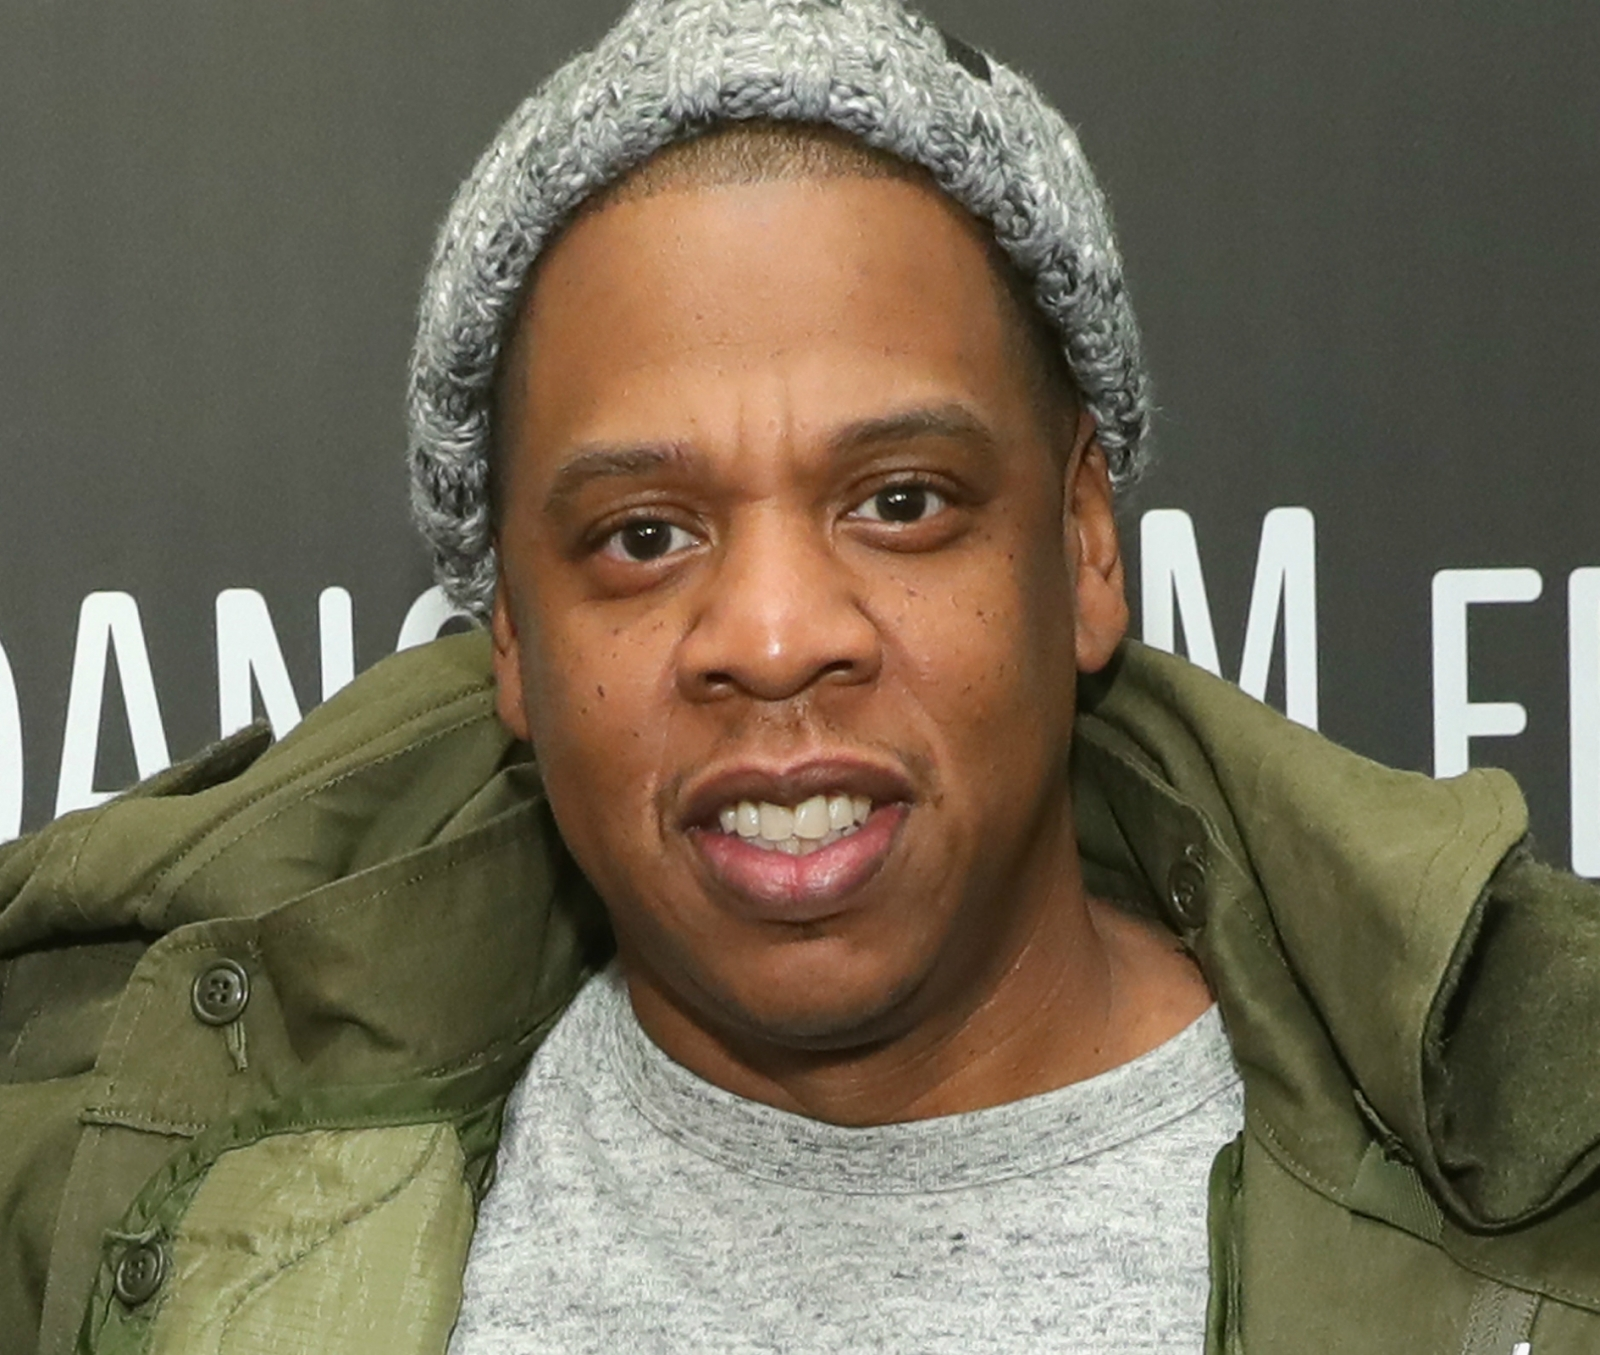 Jay Z jets to Jamaica for Damian Marley recording session ... Jay Z